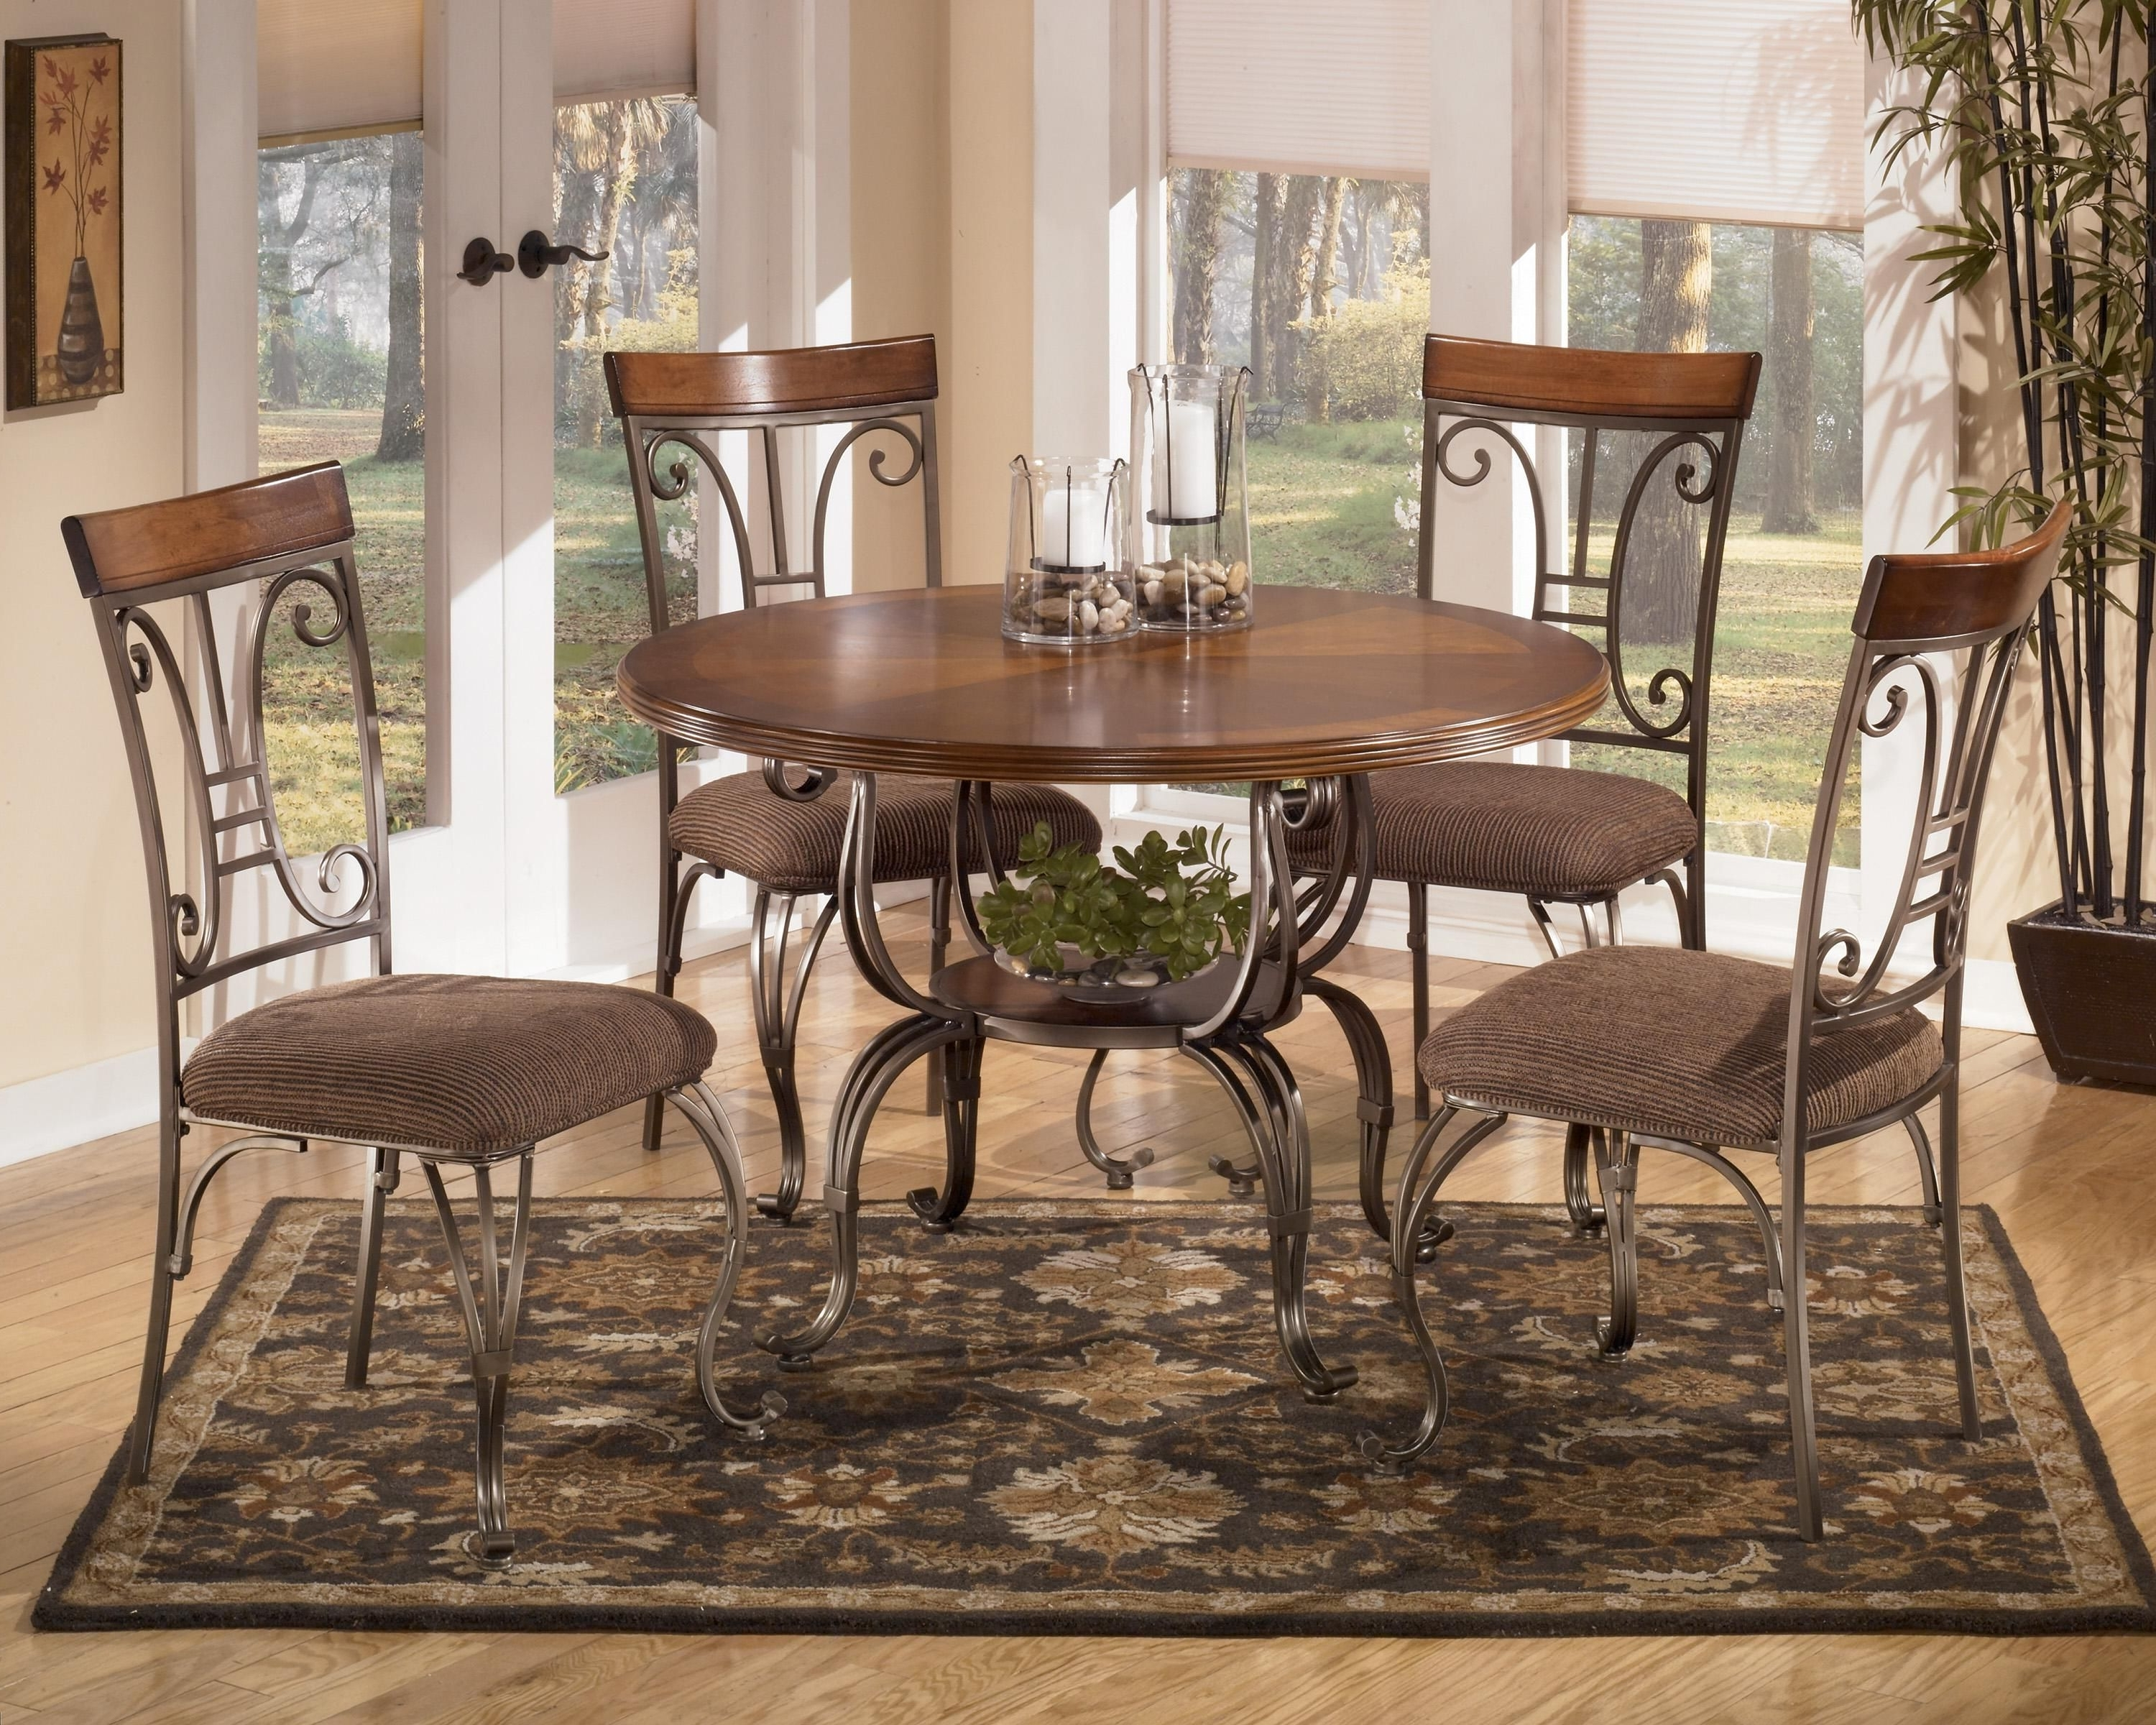 Plentywood 5 Piece Round Dining Table Setsignature Design Within Current Craftsman 7 Piece Rectangular Extension Dining Sets With Arm & Uph Side Chairs (View 25 of 25)